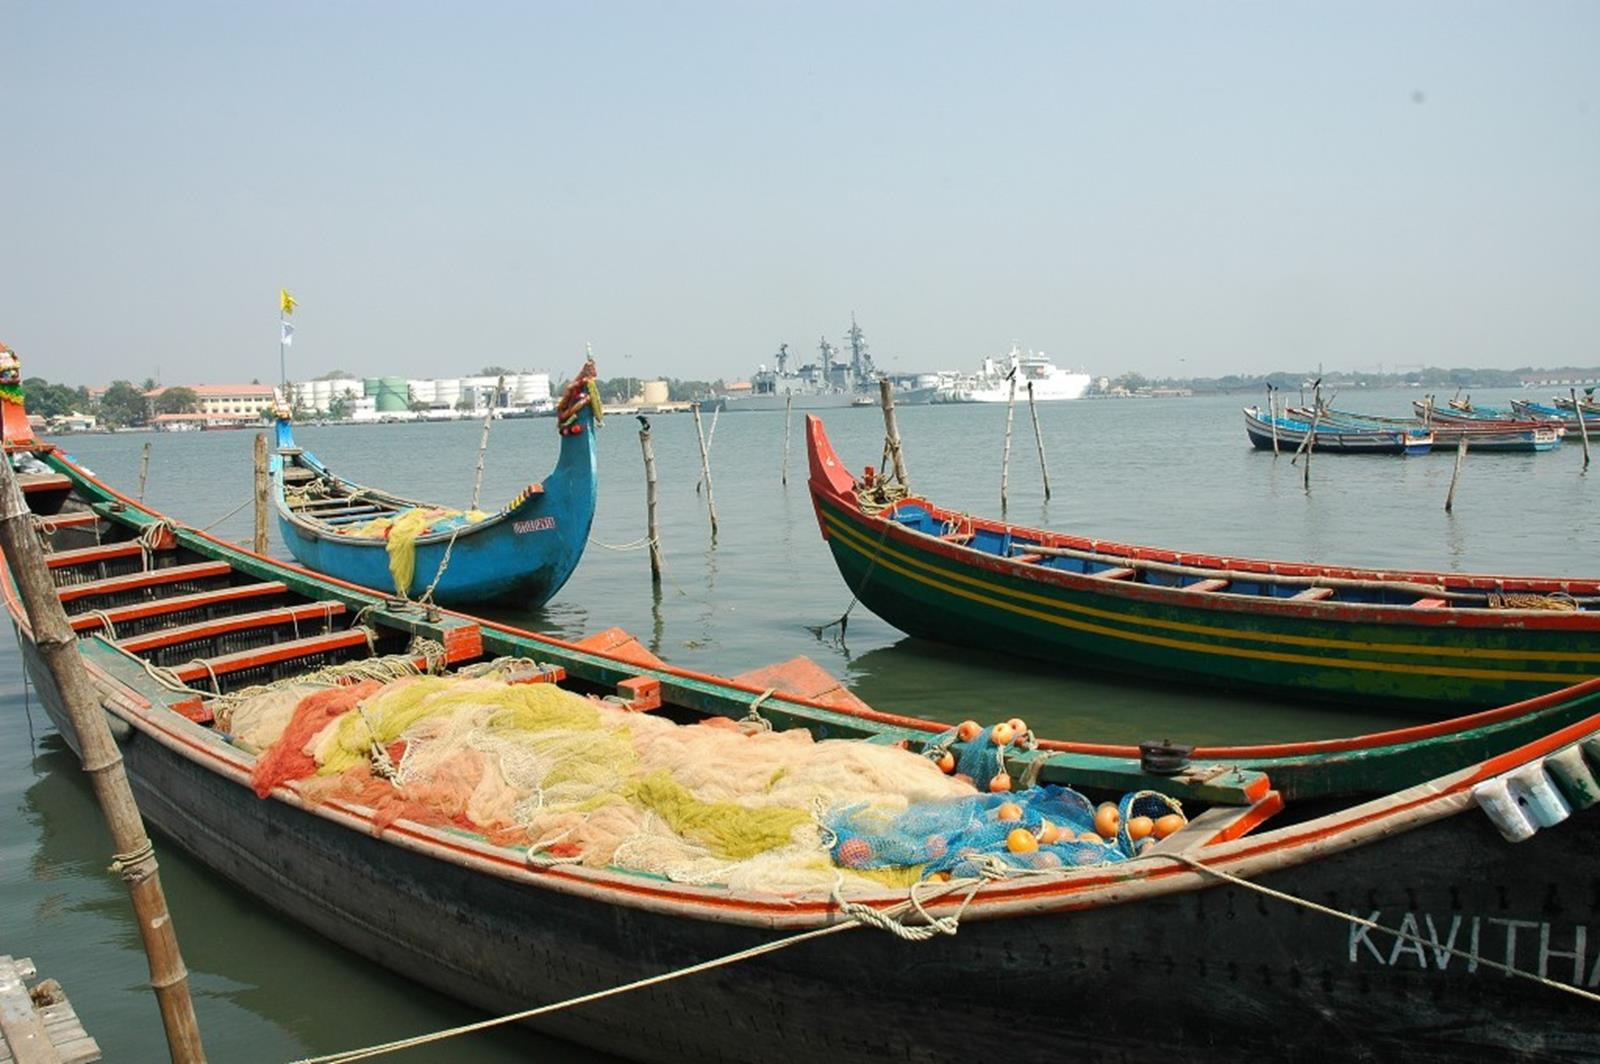 Fishing boat at Kochi fort – Photo by Prashant Ram, CC BY-ND 2.0